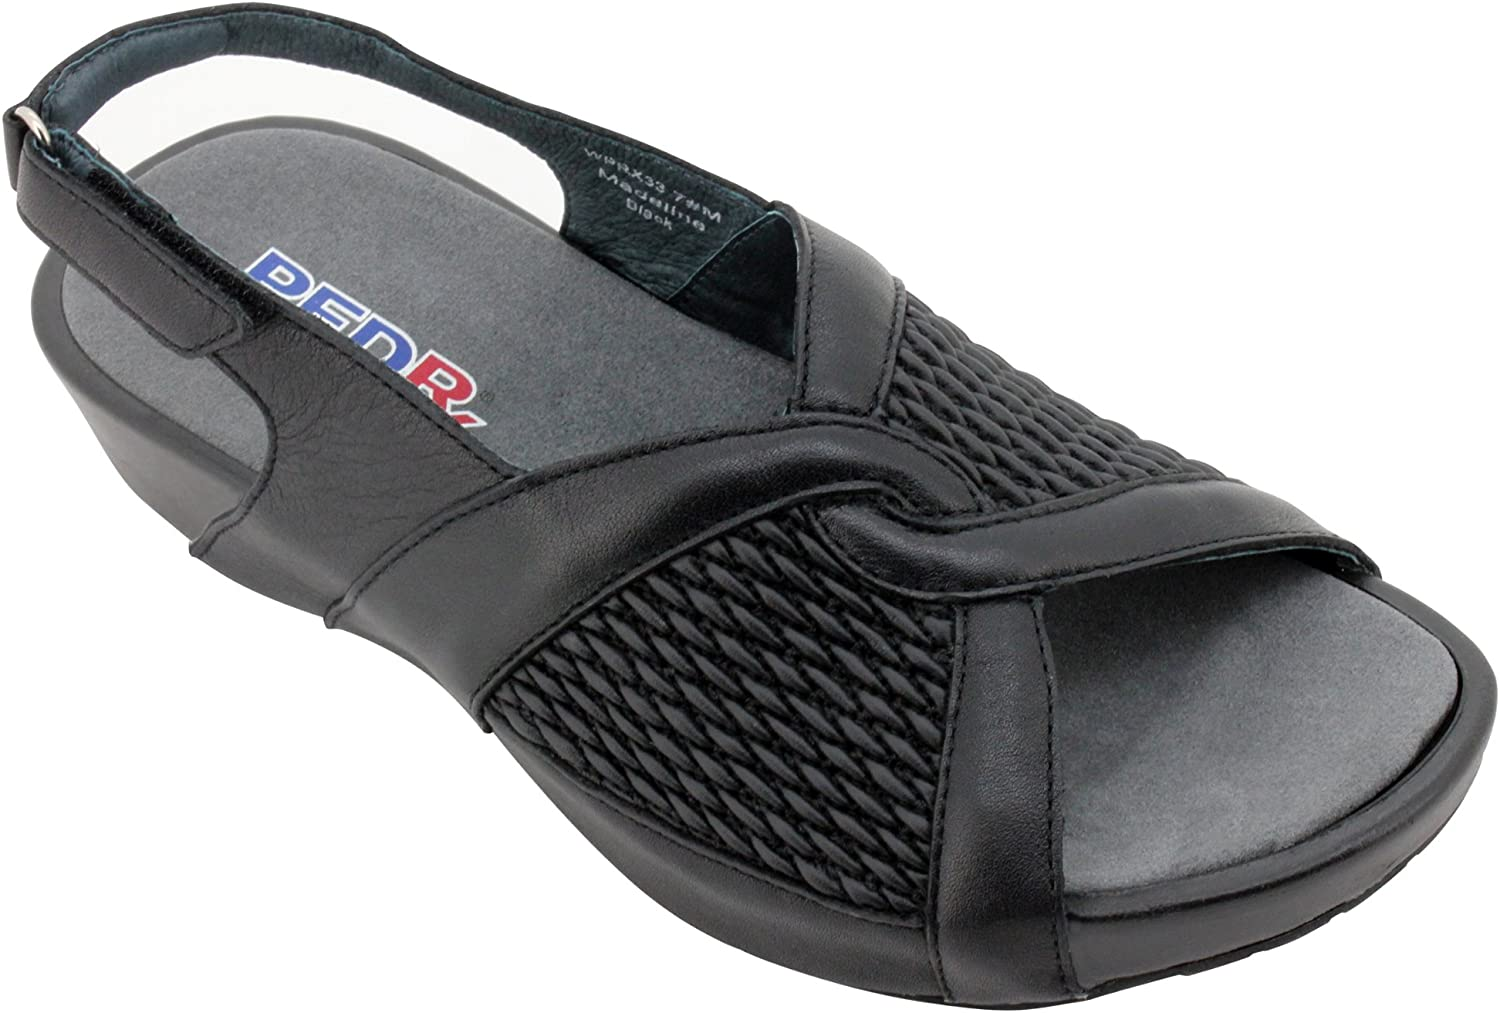 Max 52% OFF Propet Womens Madeline trend rank Comfort Cushion Sandals Casual